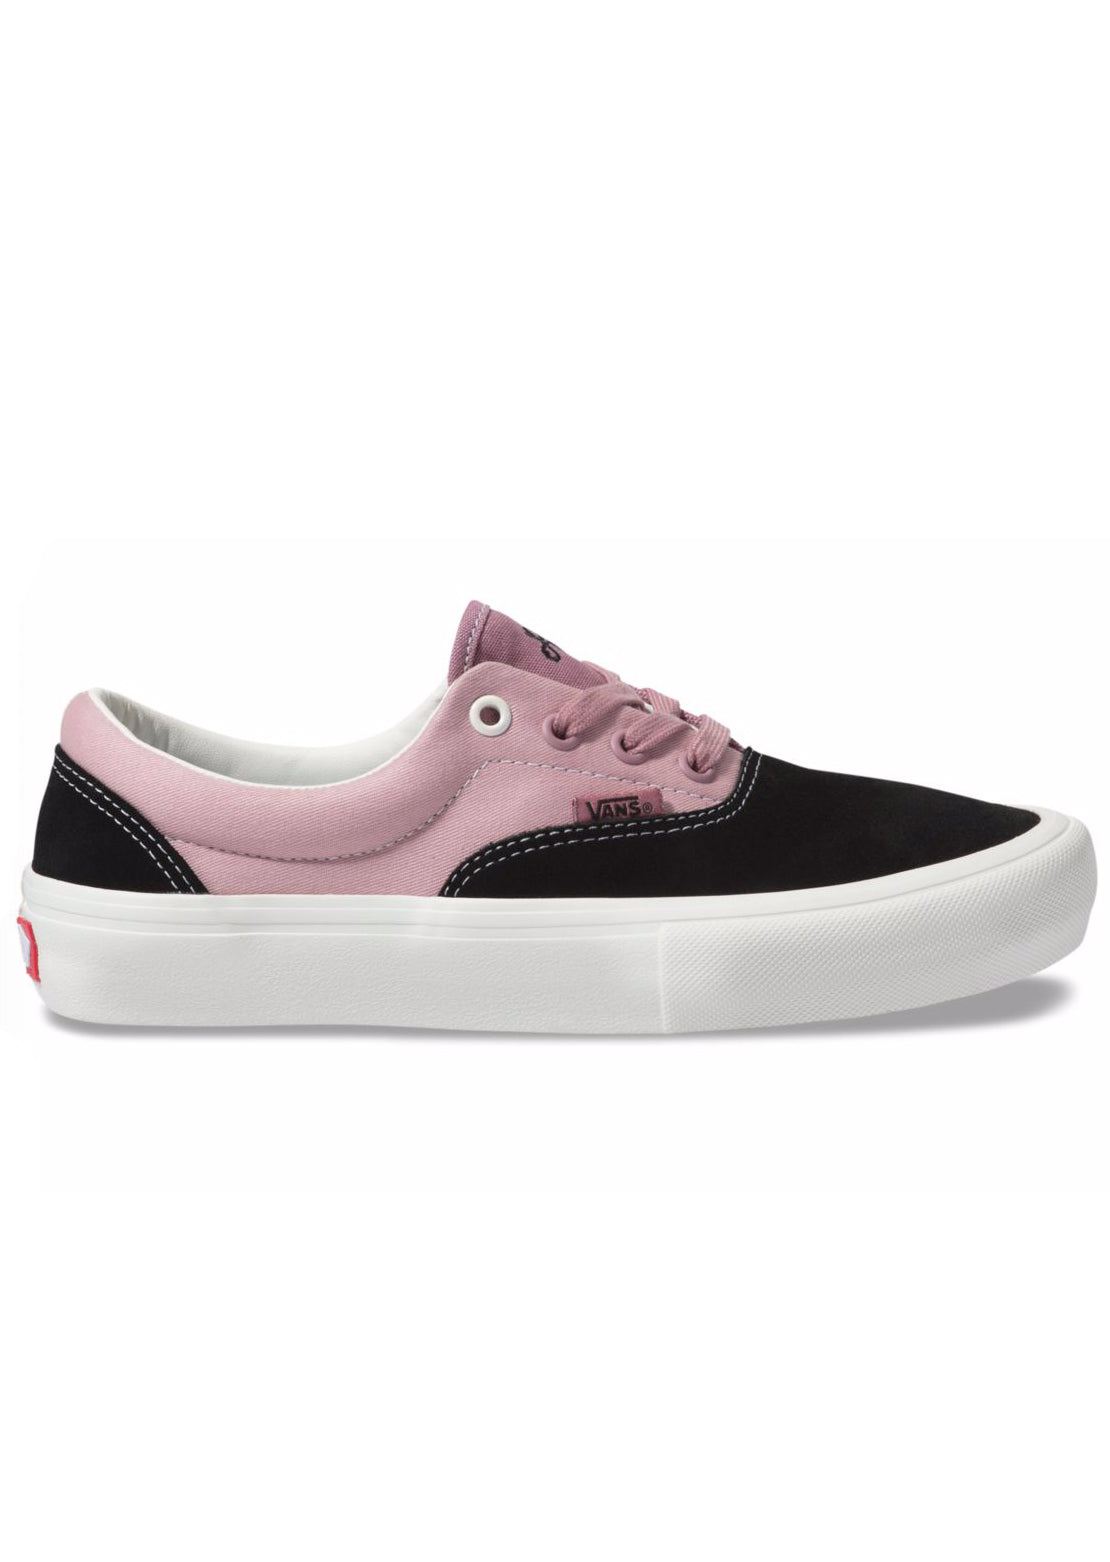 Vans Women's Era Pro Lizzie Amanto Shoes Black/Nostalgia Rose